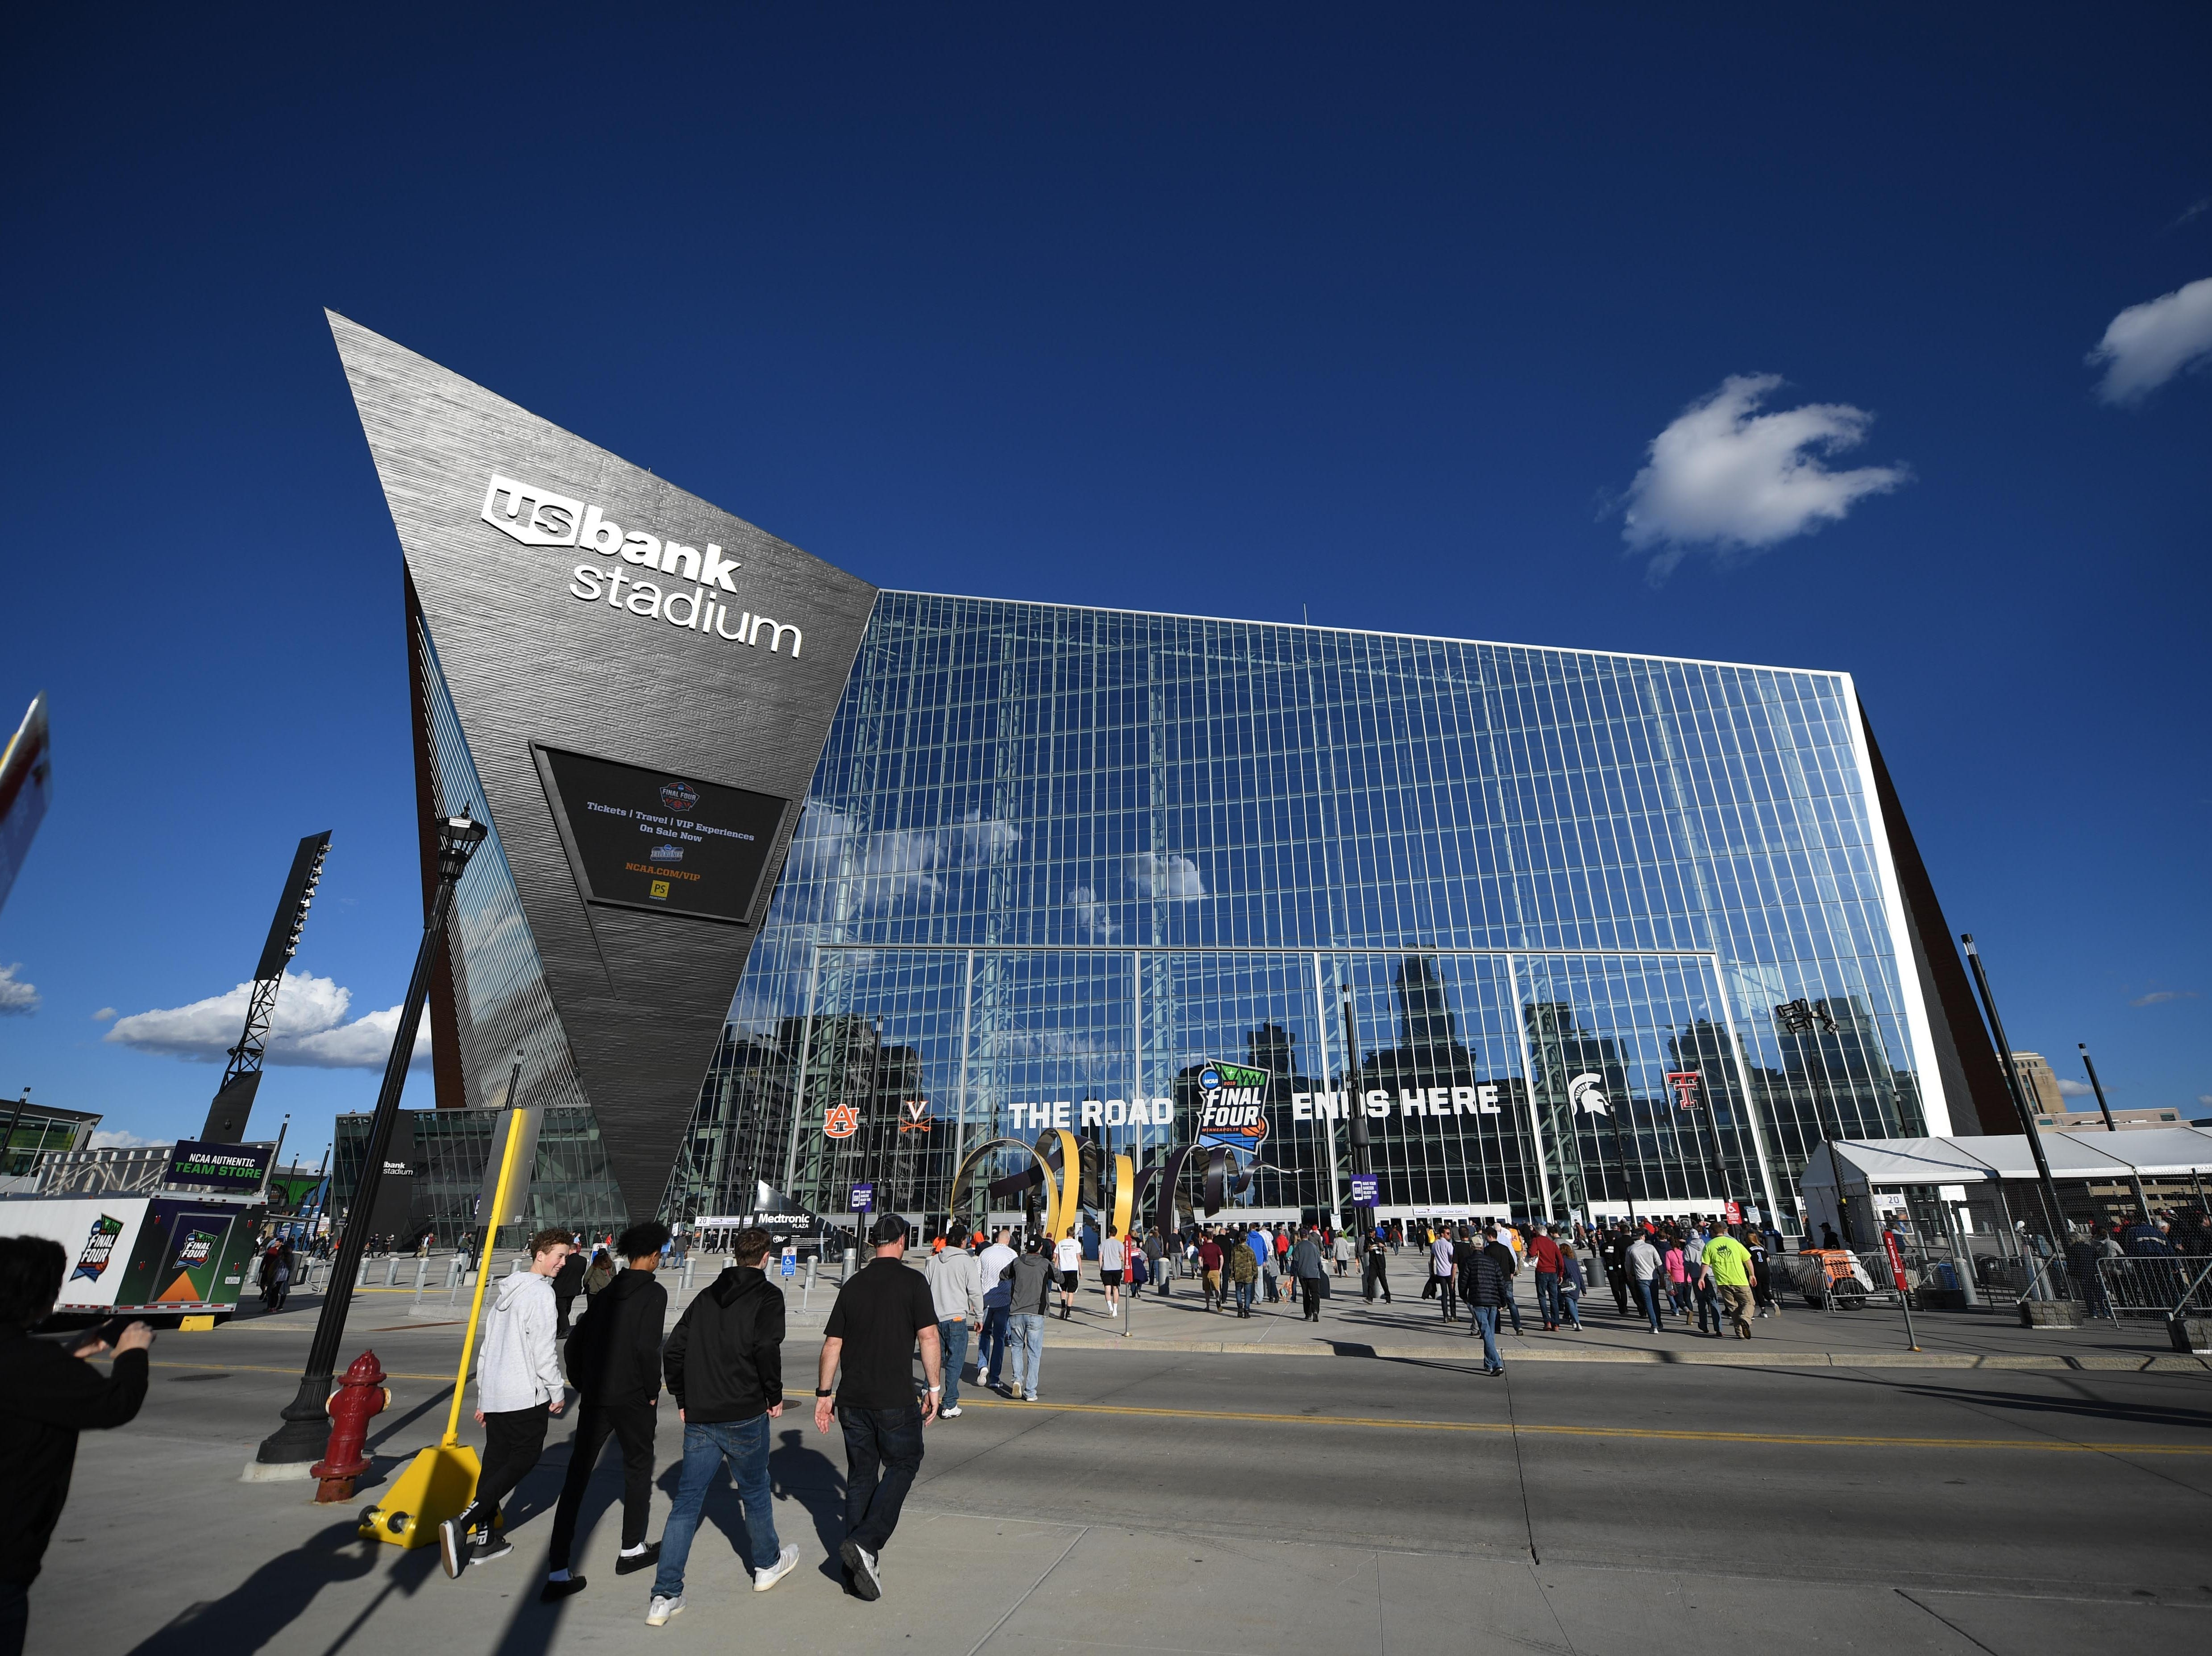 Apr 8, 2019; Minneapolis, MN, USA; Basketball fans arrive before the championship game of the 2019 men's Final Four between the Virginia Cavaliers and Texas Tech Red Raiders at US Bank Stadium. Mandatory Credit: Shanna Lockwood-USA TODAY Sports